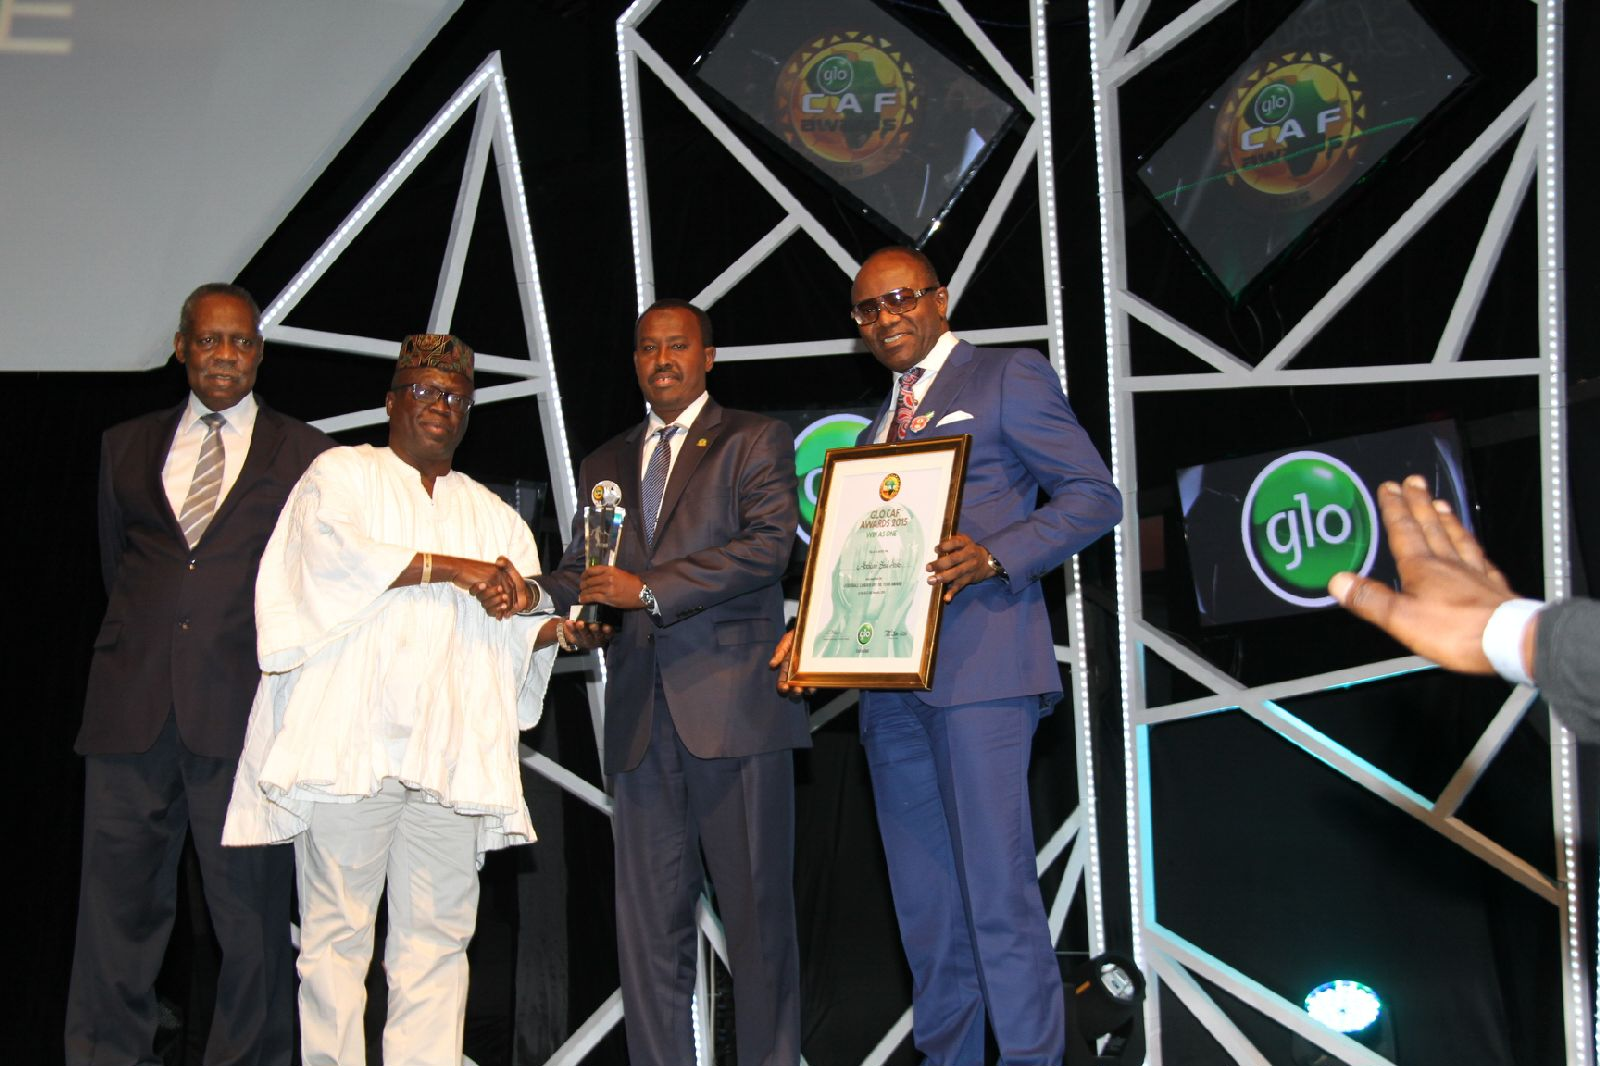 Somali Football Federation and CECAFA vice president, Abdiqani Said Arab (second from right) receives the African Football Leader of the Year during the Glo Awards in Nigeria 2015. File Photo: Somali Football Federation